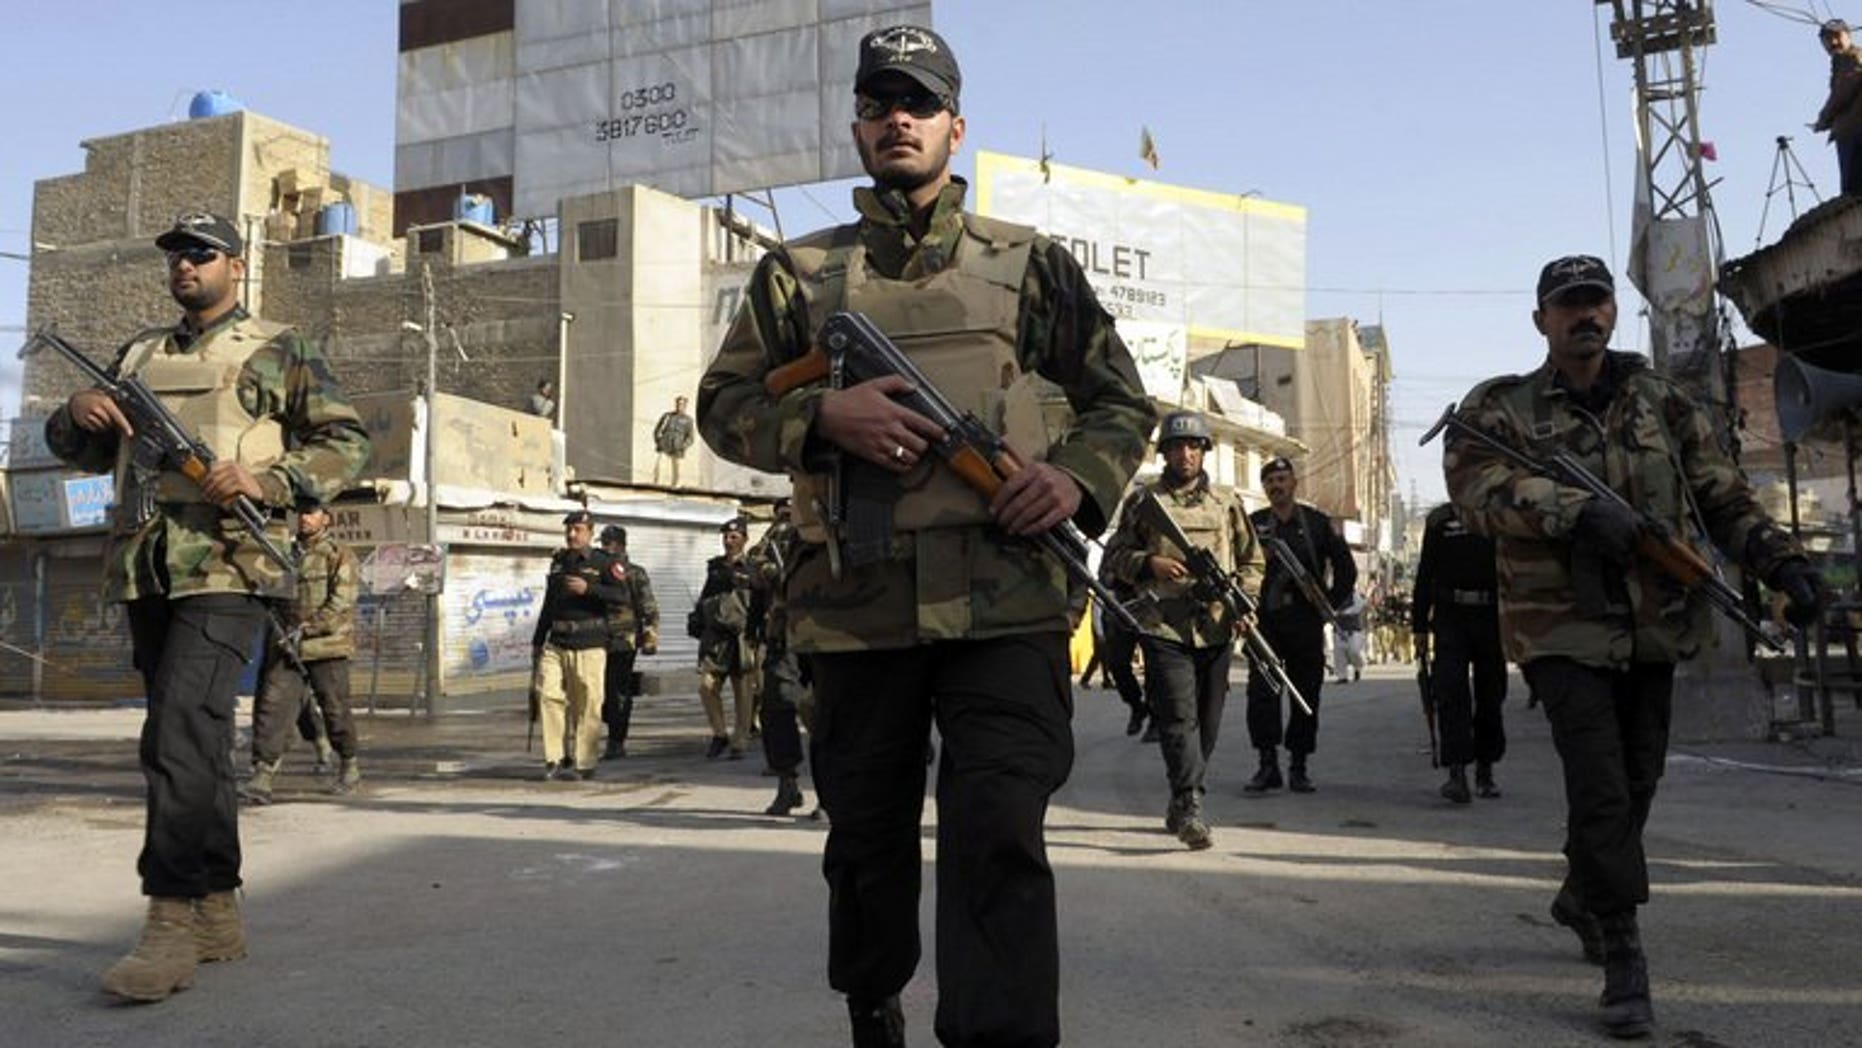 Pakistani police commandos patrol in Quetta on December 6, 2011. Gunmen opened fire on a vehicle in southwest Pakistan on Monday, killing four people from the minority Shiite community, police said.